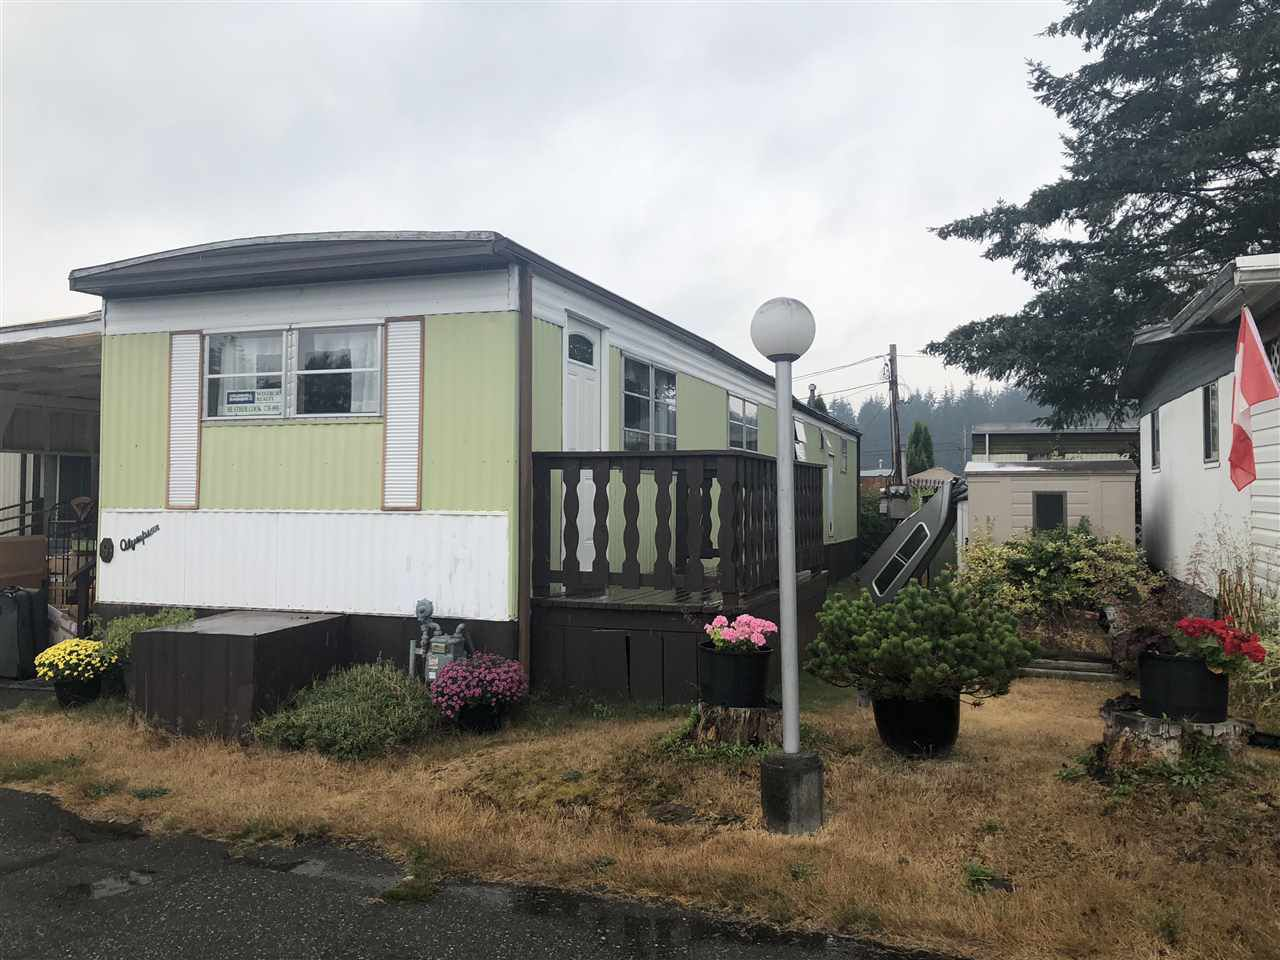 """Main Photo: 9 3031 200TH Street in Langley: Brookswood Langley Manufactured Home for sale in """"CEDAR CREEK ESTATES"""" : MLS®# R2300424"""